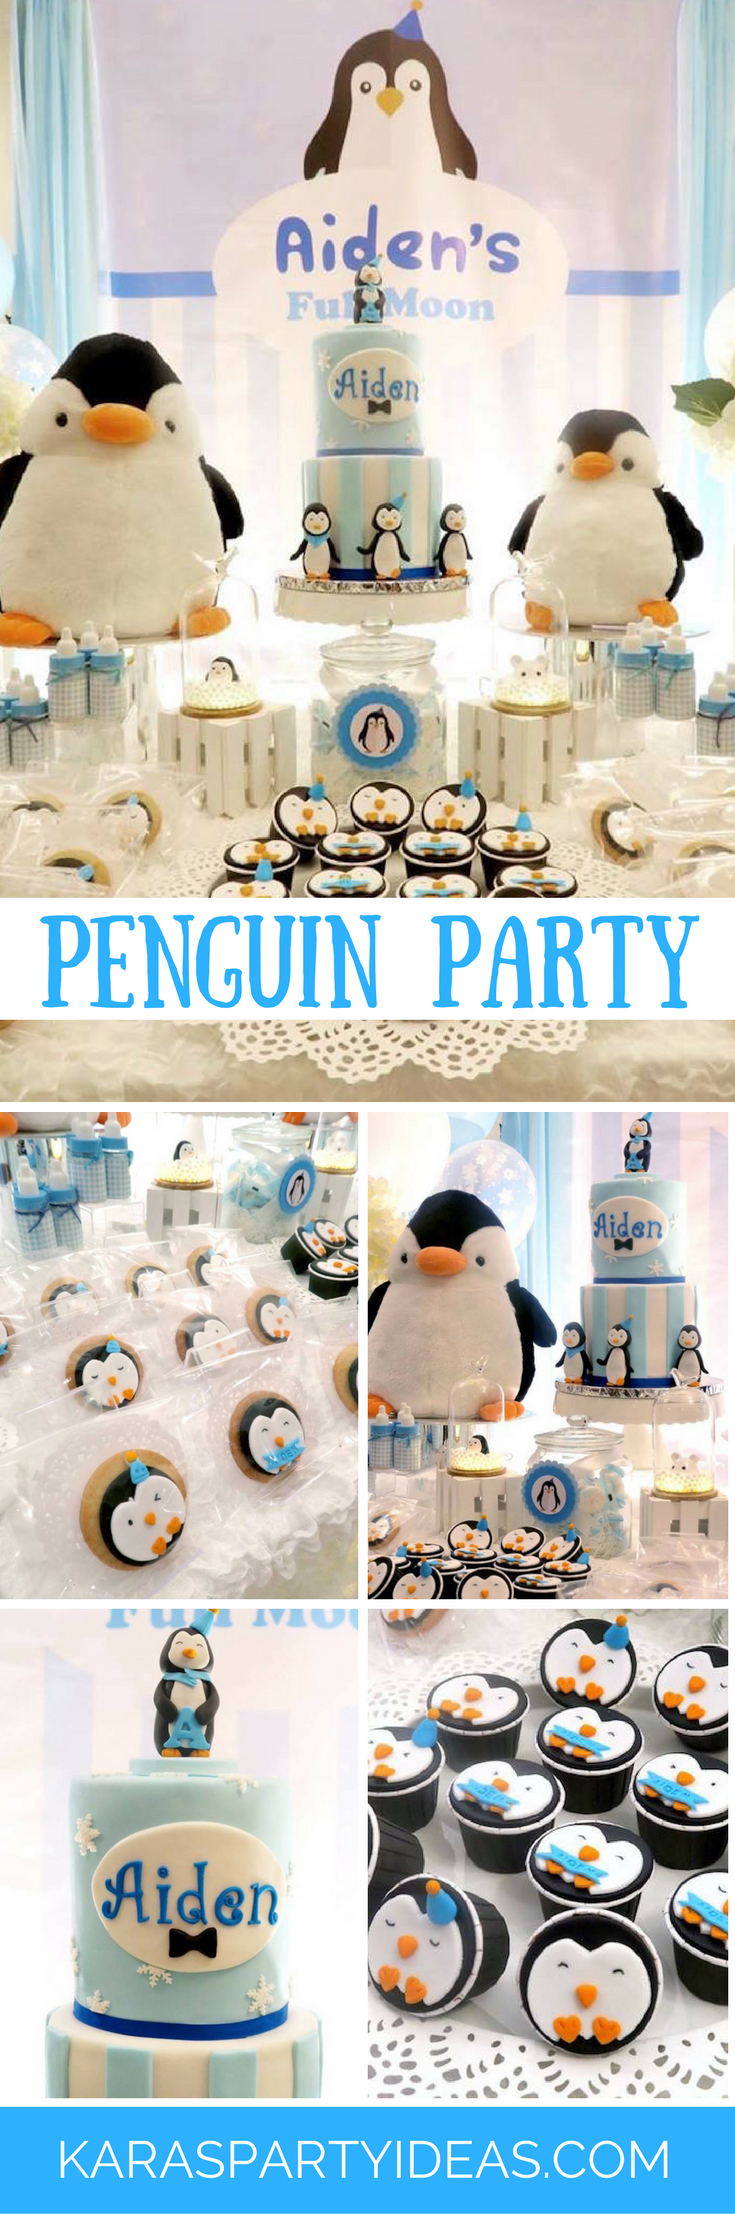 Penguins Party via Kara's Party Ideas - KarasPartyIdeas.com